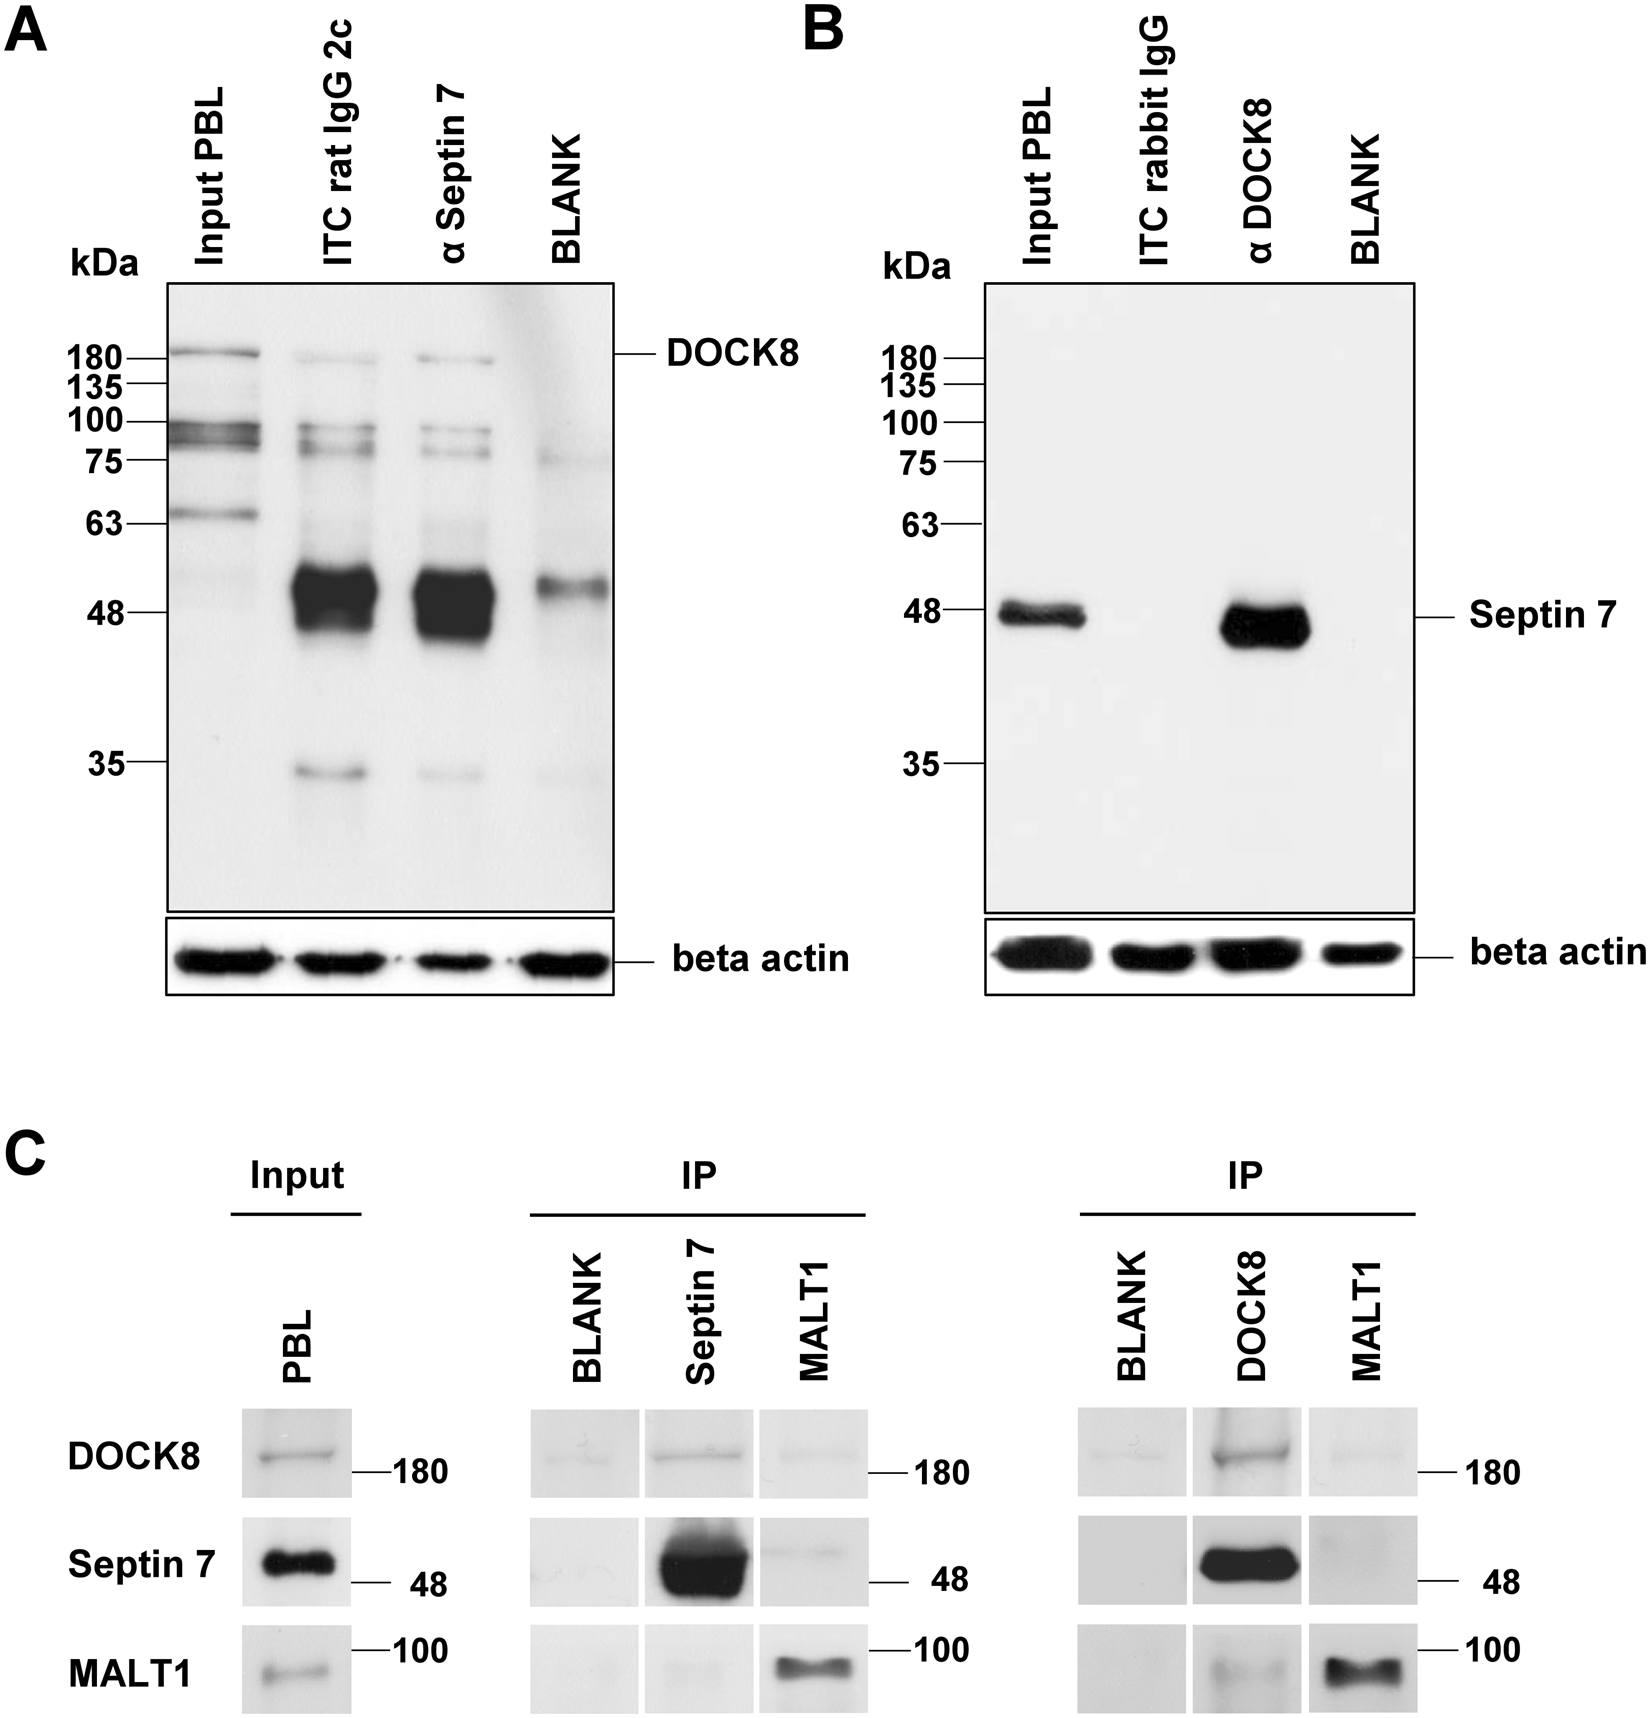 Interaction Of Septin 7 And Dock8 In Equine Lymphocytes Reveals